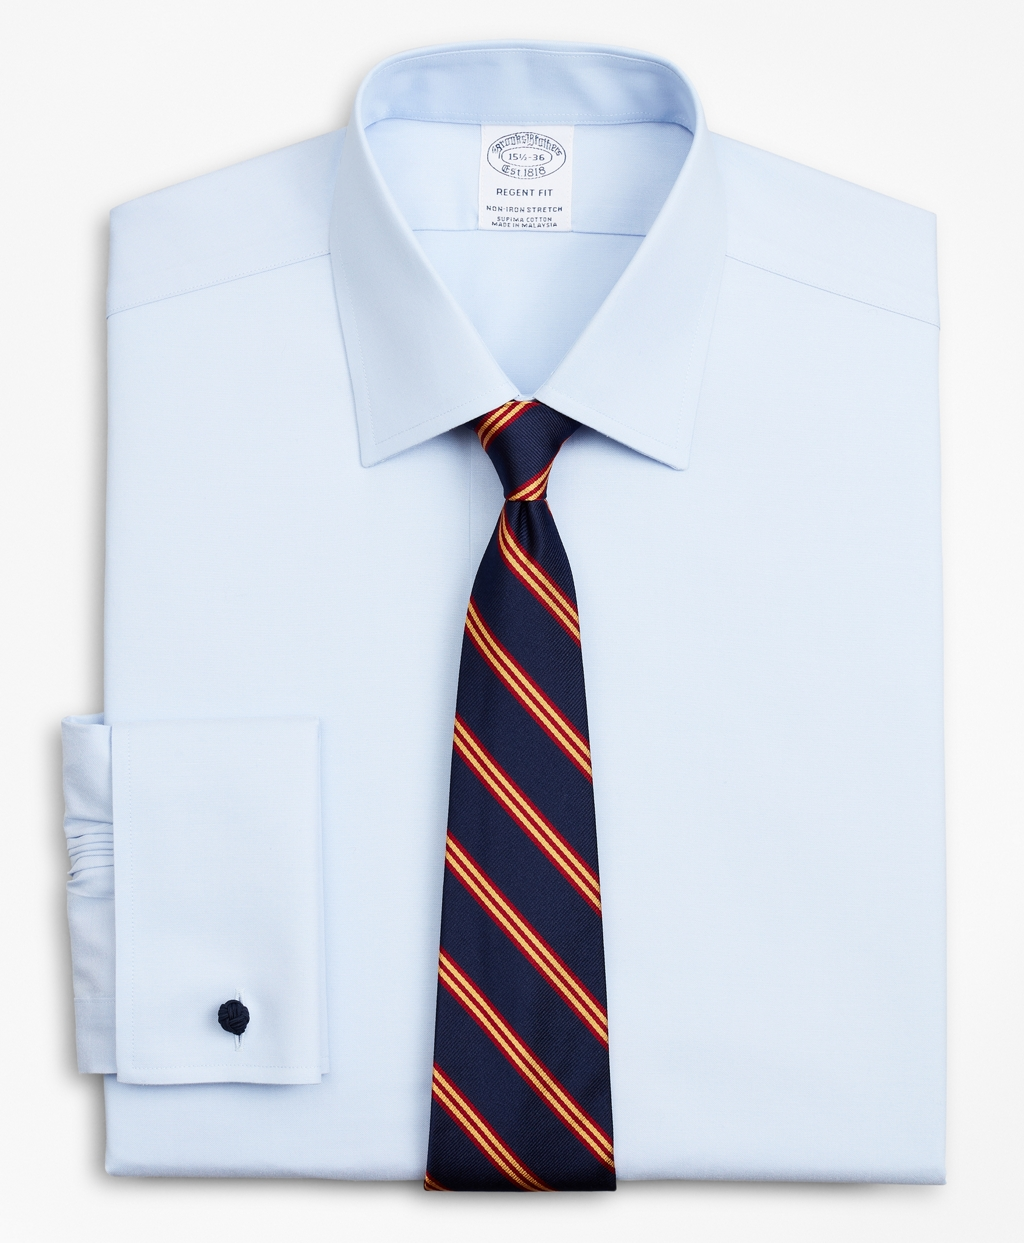 Brooksbrothers Stretch Regent Regular-Fit Dress Shirt, Non-Iron Pinpoint Ainsley Collar French Cuff Pinpoint